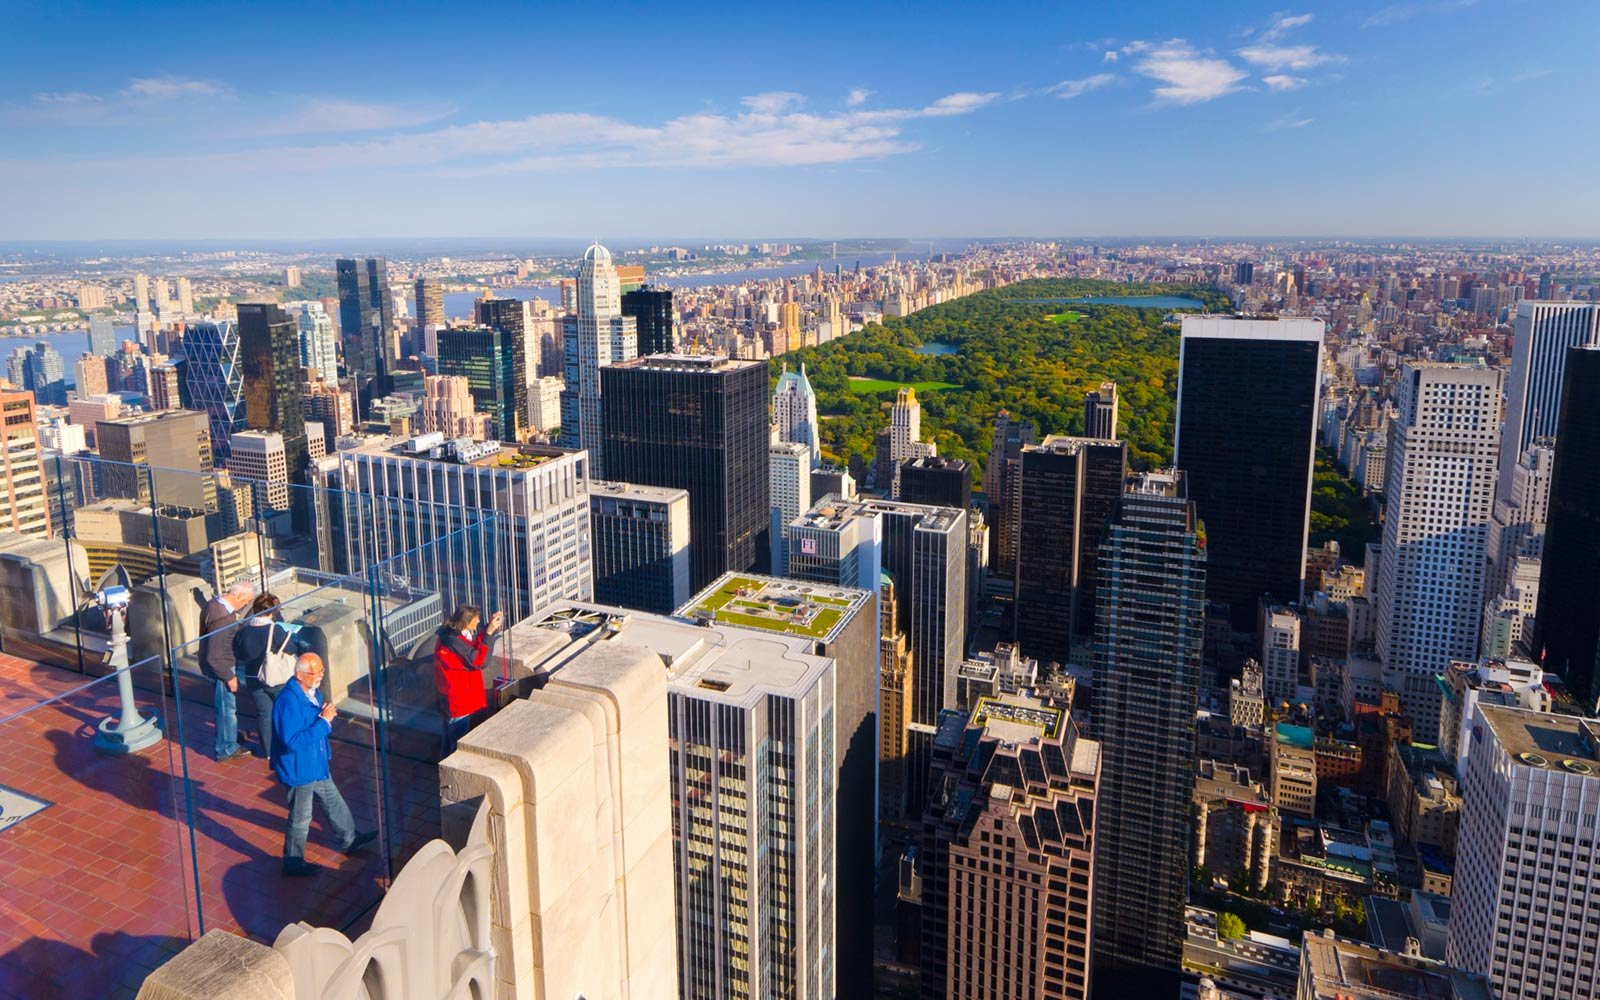 Central Park from Top of The Rock, Rockefeller Center, New York City, New York